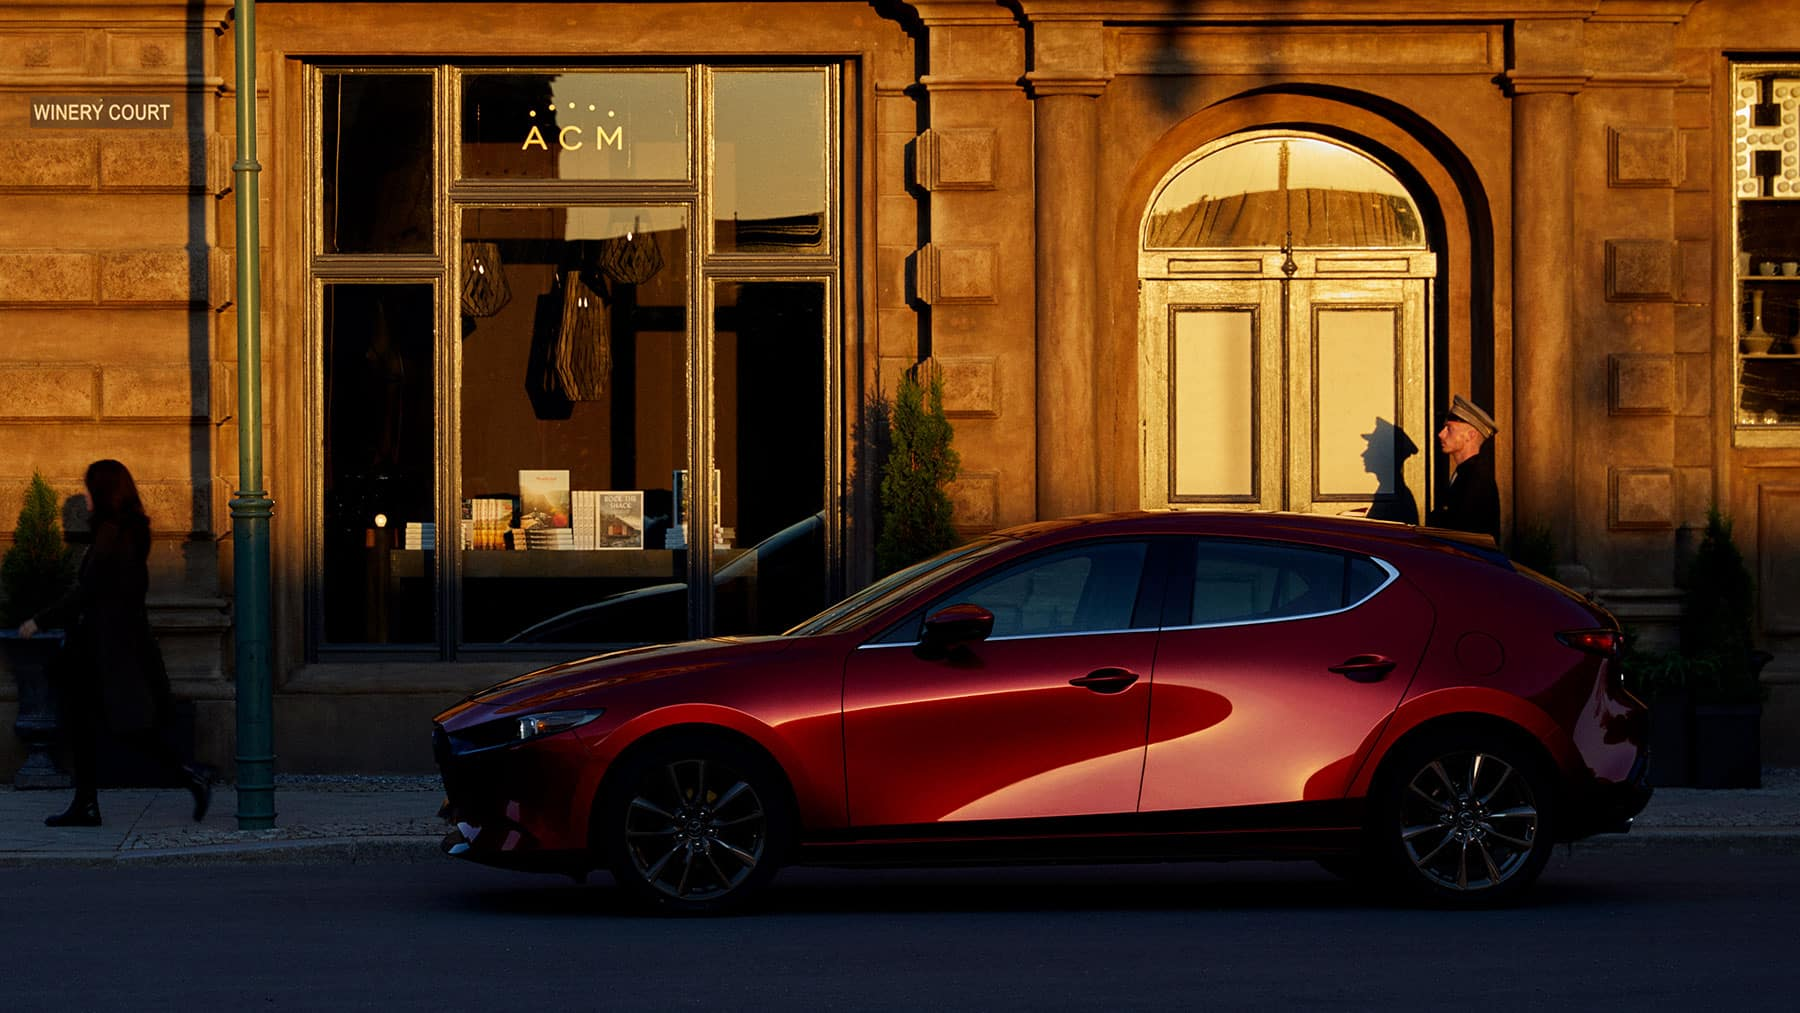 A red 2020 Mazda3 Hatchback in the golden hour against a building.